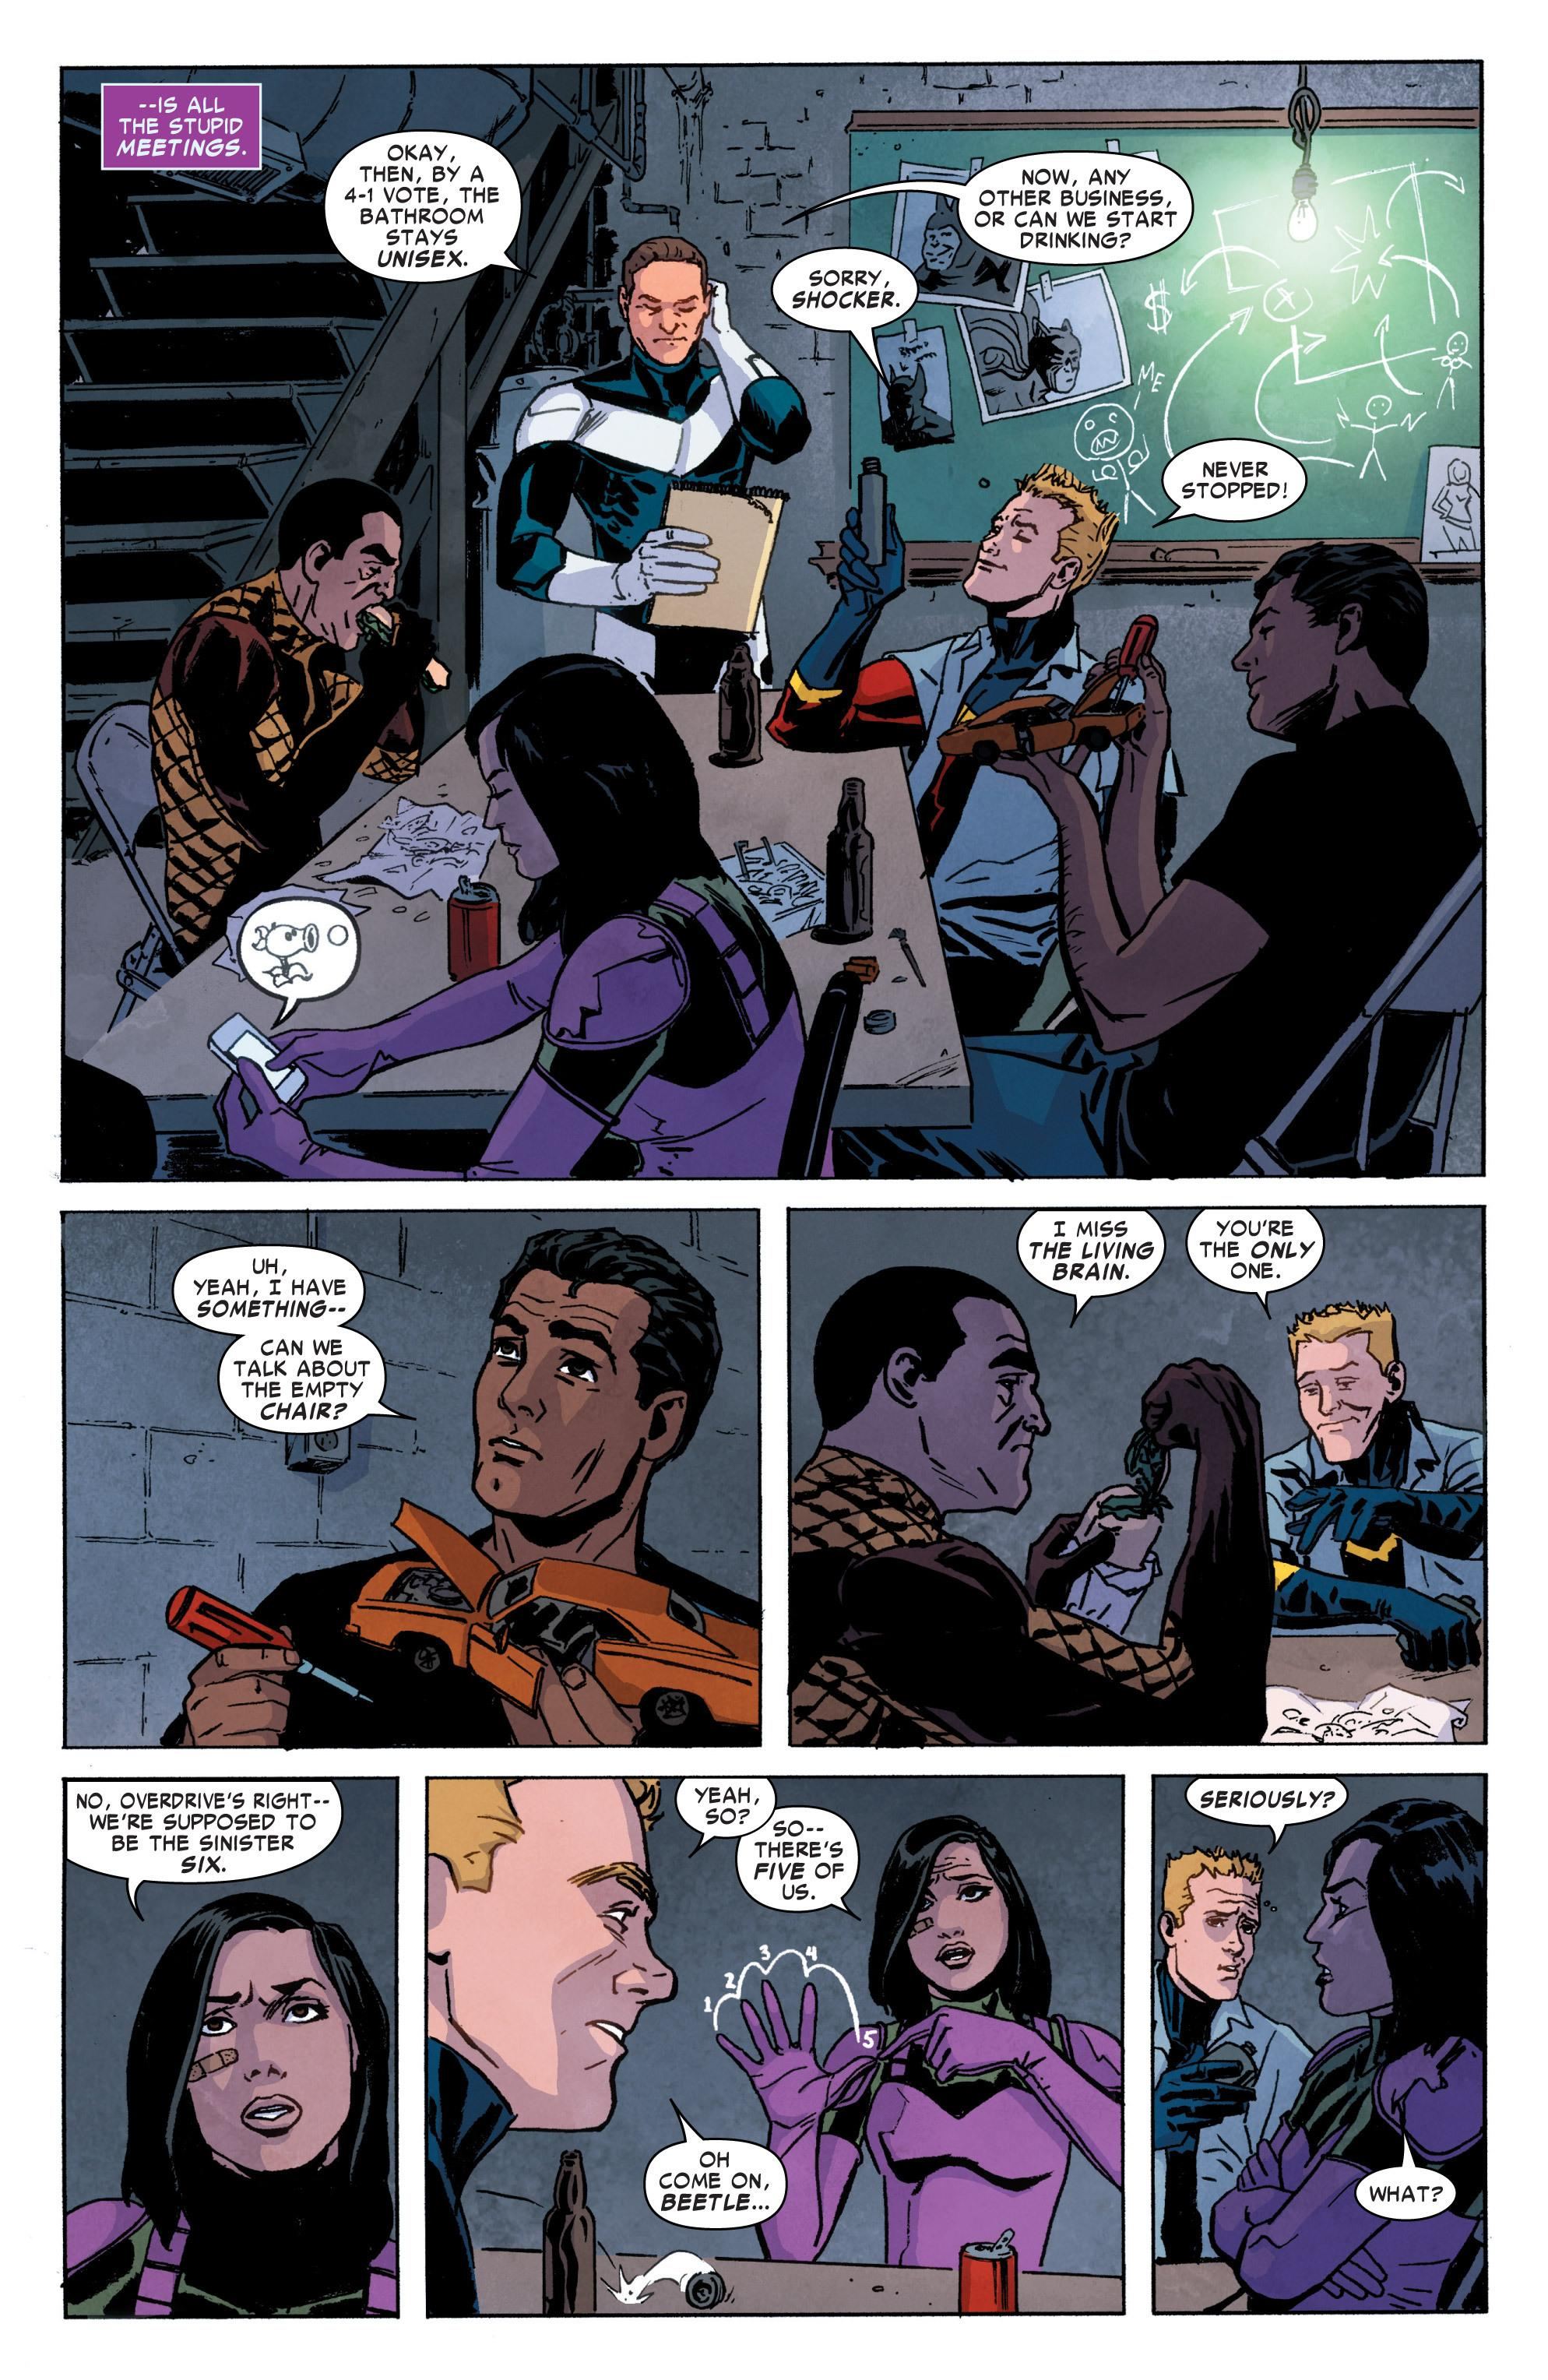 The Superior Foes of Spider-Man - Getting The Band Back Together review